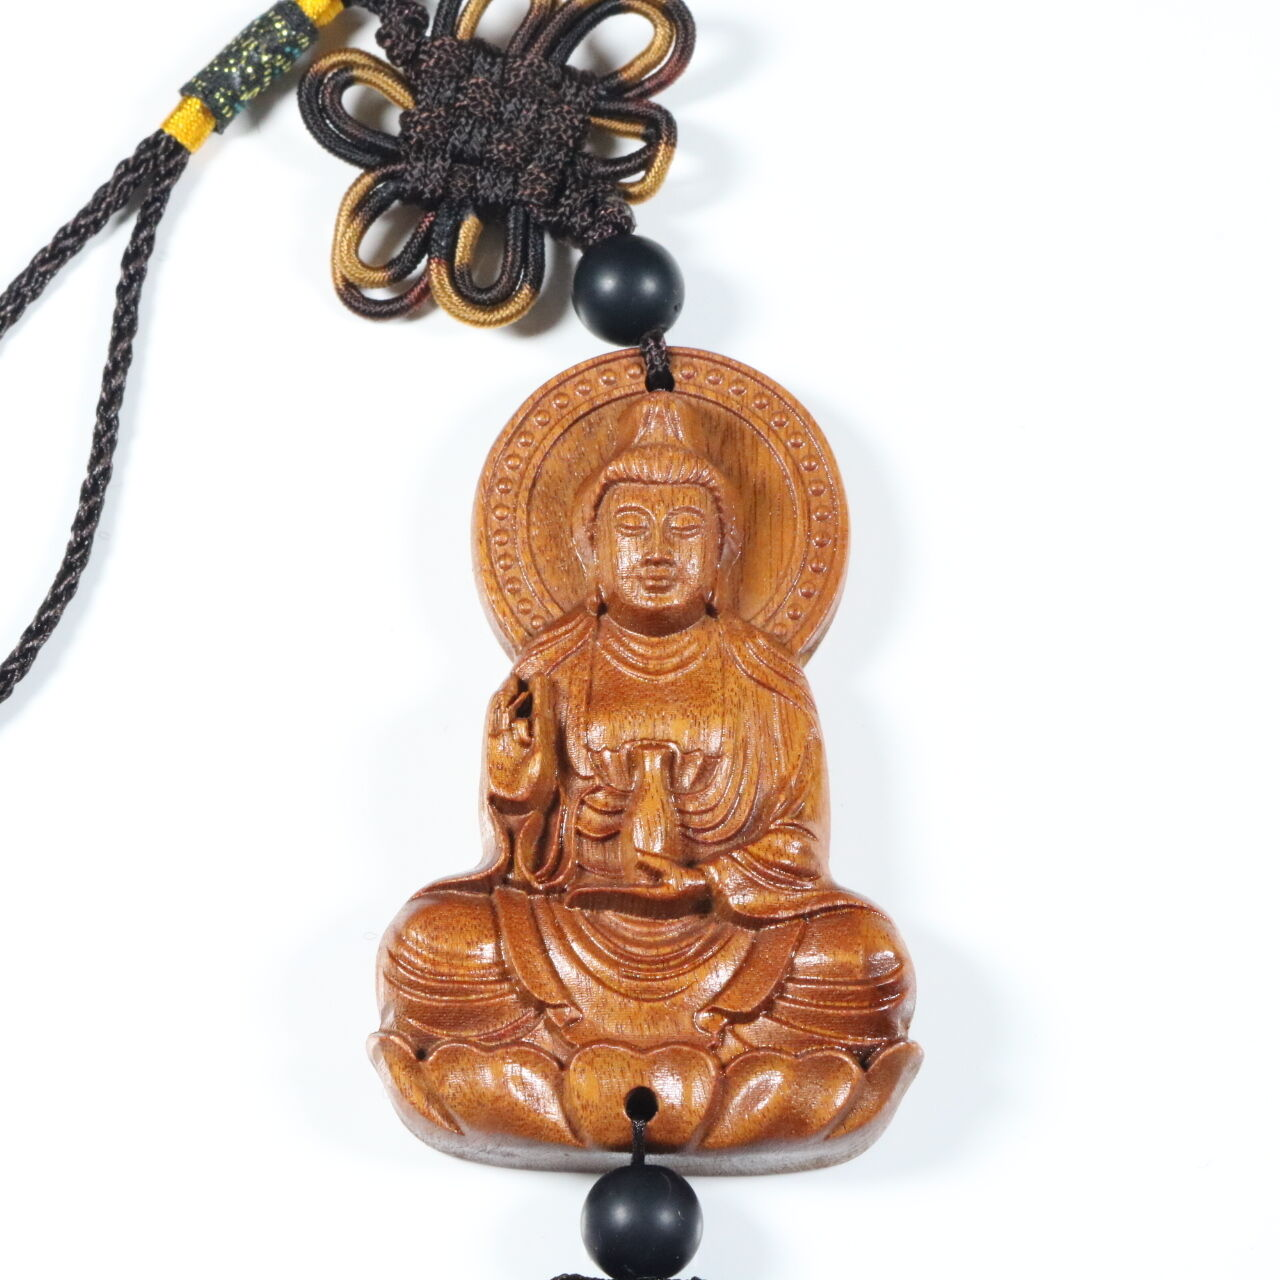 clear fork buddhist dating site In this paper i will examine the buddhist diet - its restrictions, significance, symbolism, and the reasons behind these guidelines most of the world's great religious or spiritual faiths.